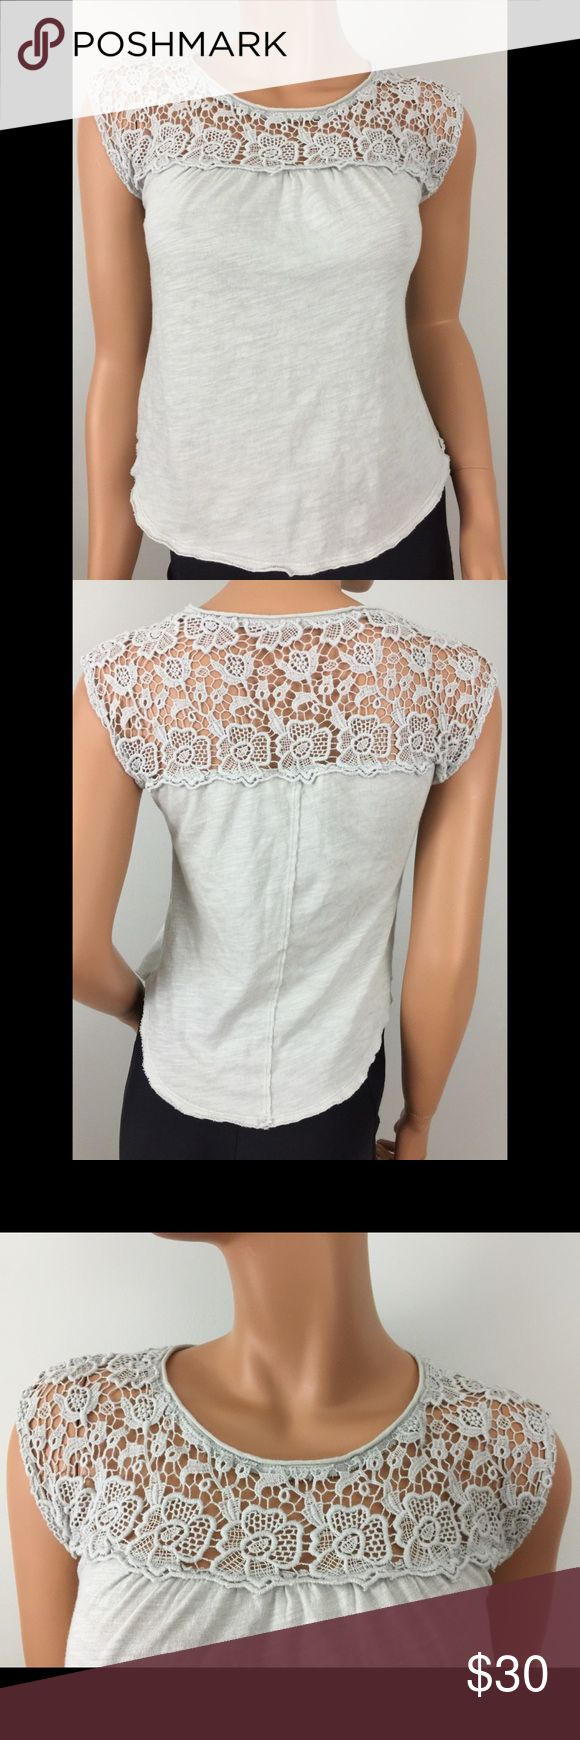 """Abercrombie & Fitch Crochet Tee Light Gray Small Excellent condition! Material is 60% cotton and 40% modal. Measures 16"""" armpit to armpit and 20.5"""" from center of back neckline to bottom hem. Abercrombie & Fitch Tops Tees - Short Sleeve"""